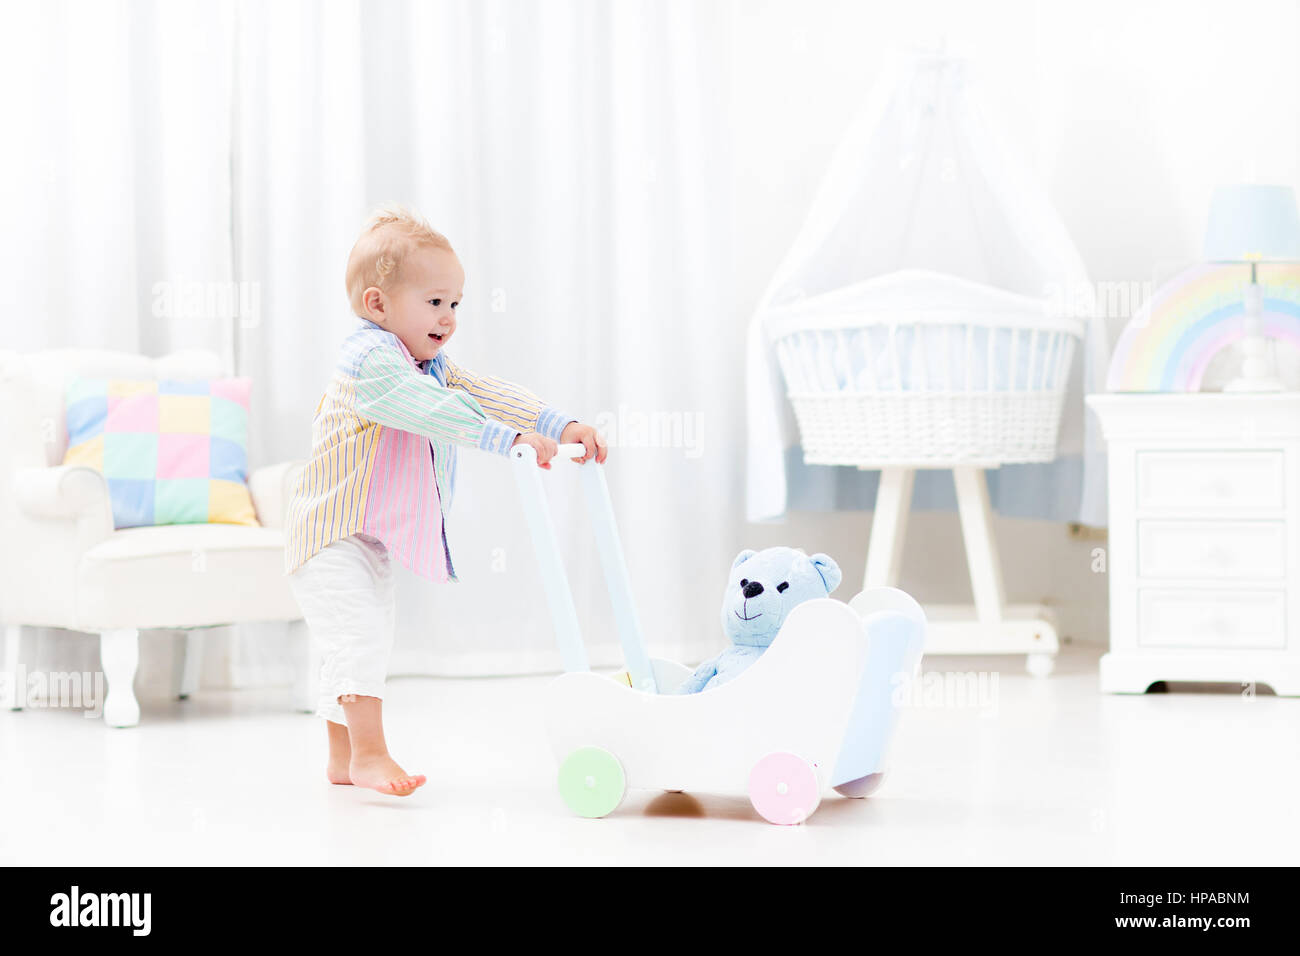 Baby boy learning to walk with wooden push walker in white bedroom with pastel rainbow color toys. Aid toy for child - Stock Image